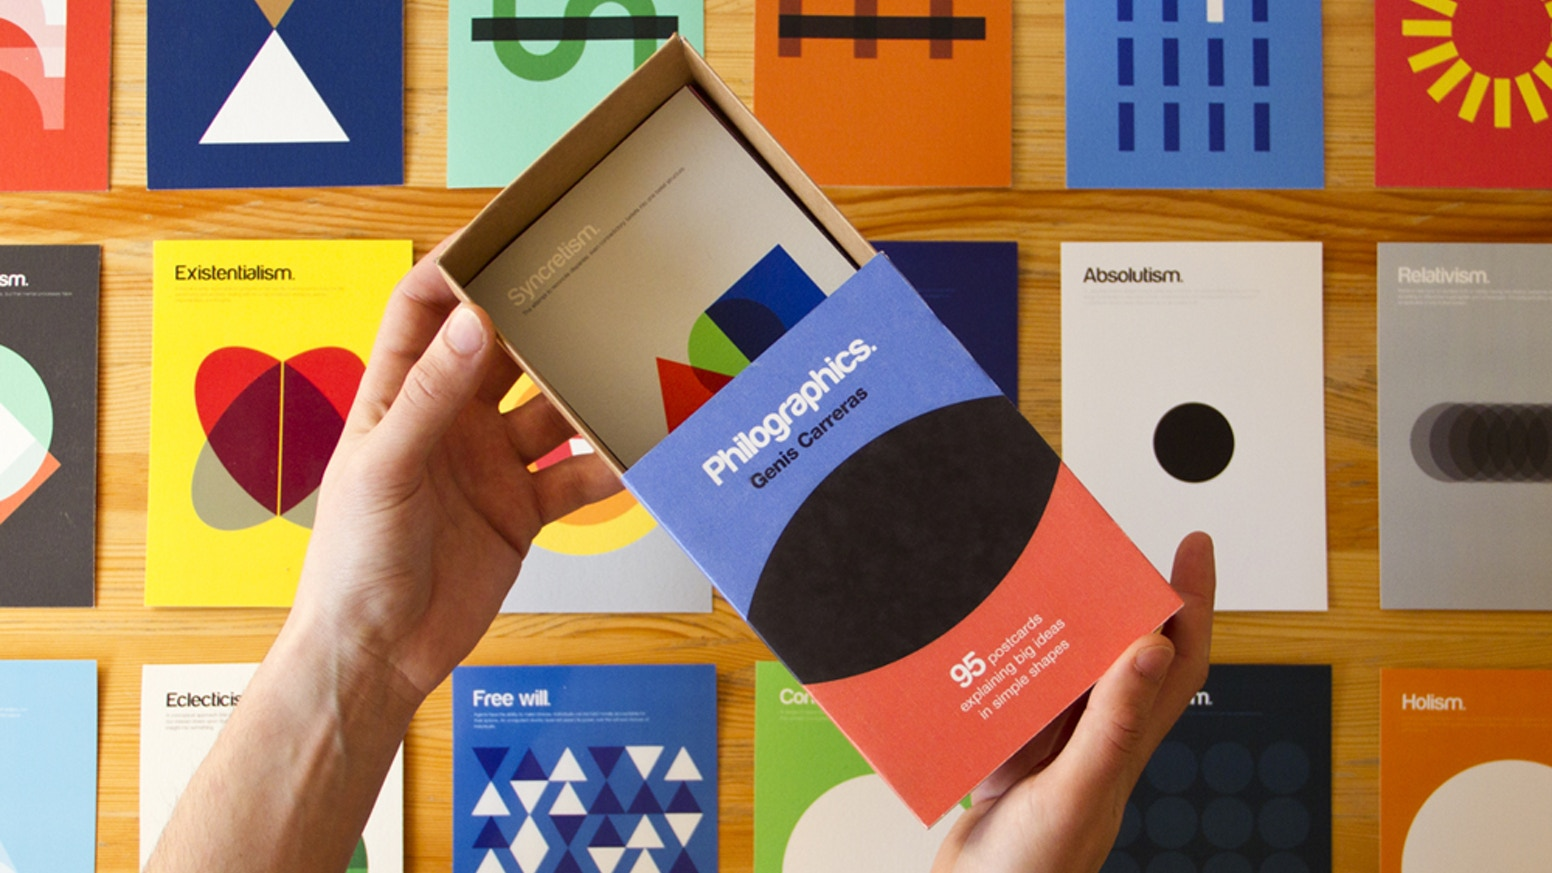 A series of 95 beautiful designs explaining philosophy using simple colors and shapes, available as a postcard box and a book.